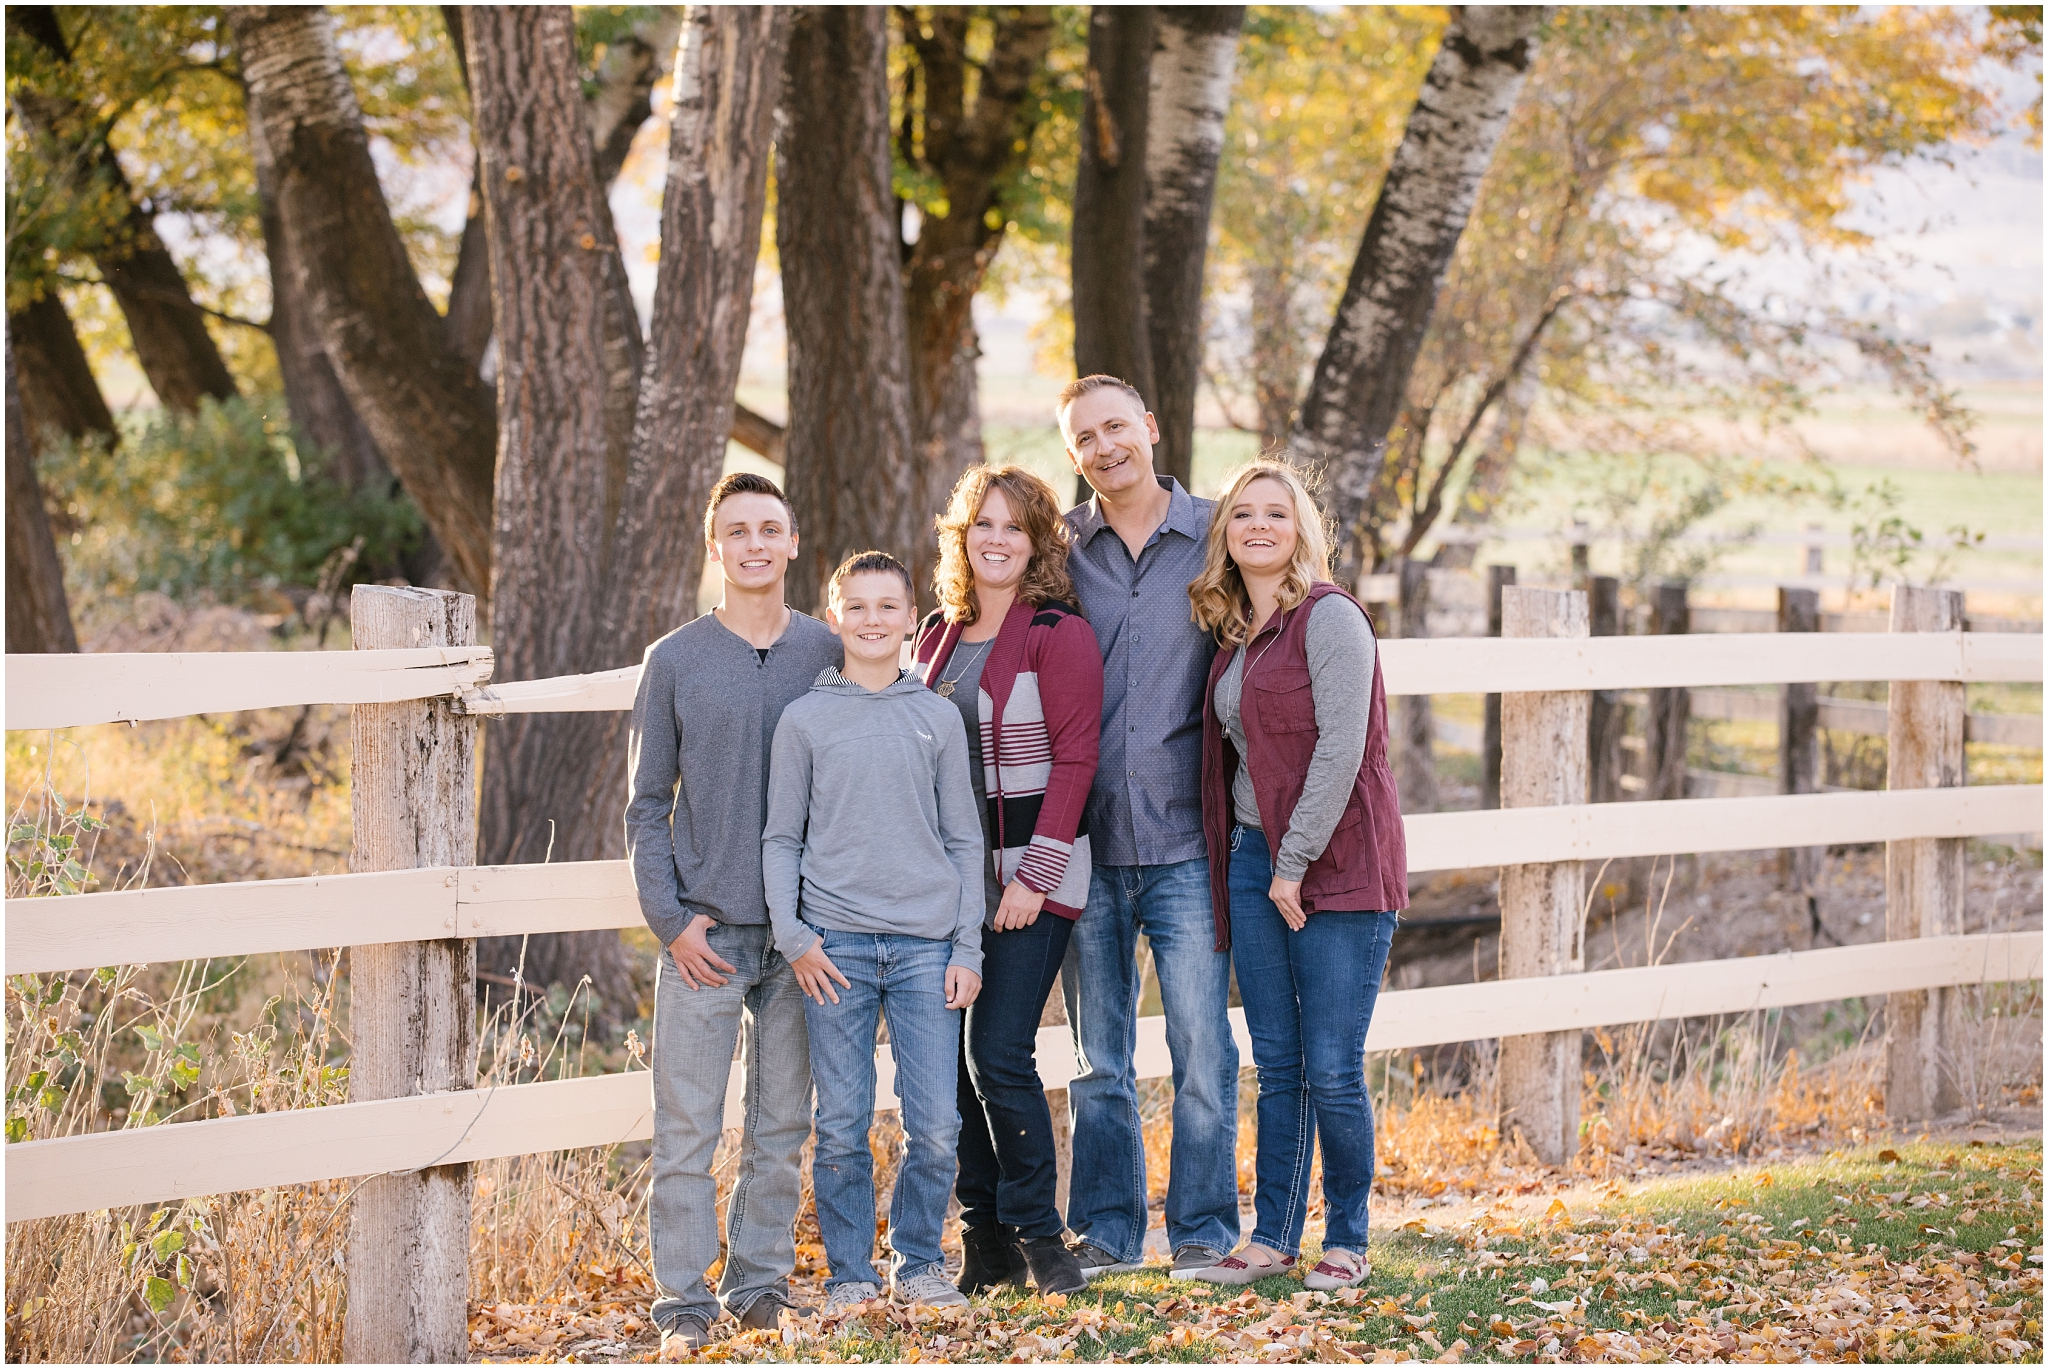 Fielding-30_Lizzie-B-Imagery-Utah-Family-Photographer-Central-Utah-Park-City-Salt-Lake-City.jpg